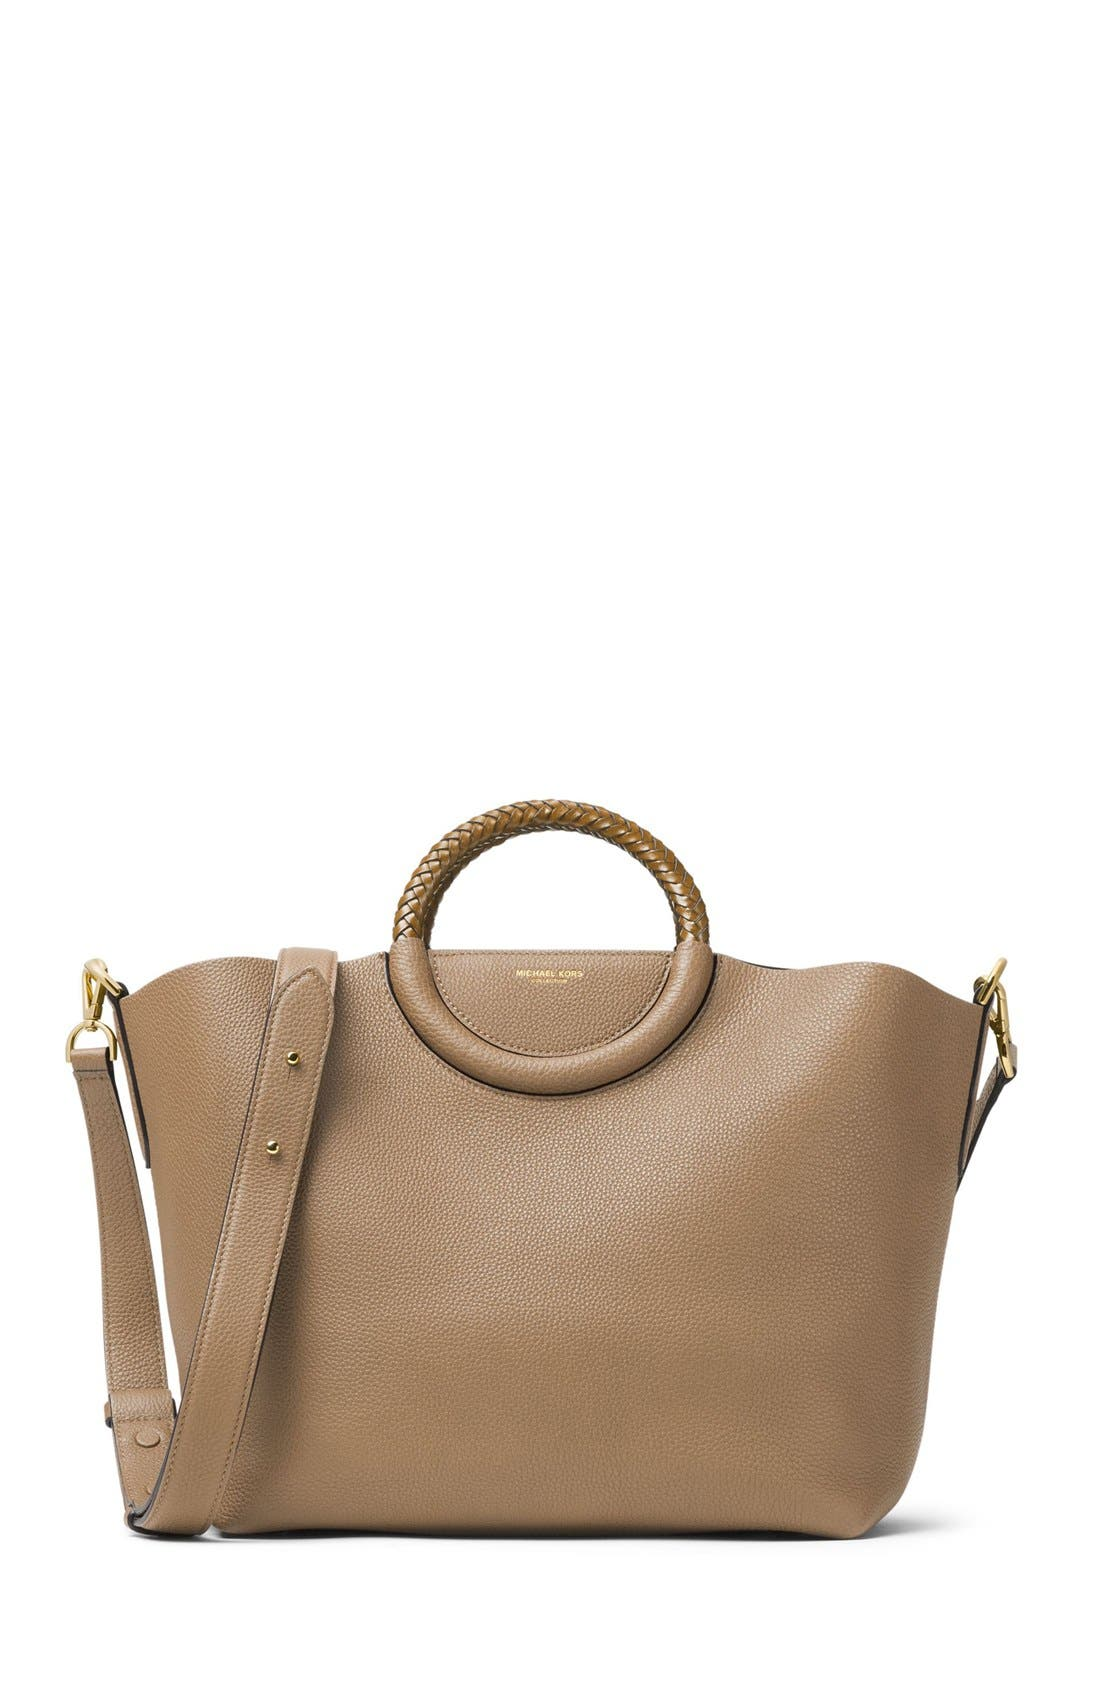 Michael Kors Skorpios Leather Market Bag